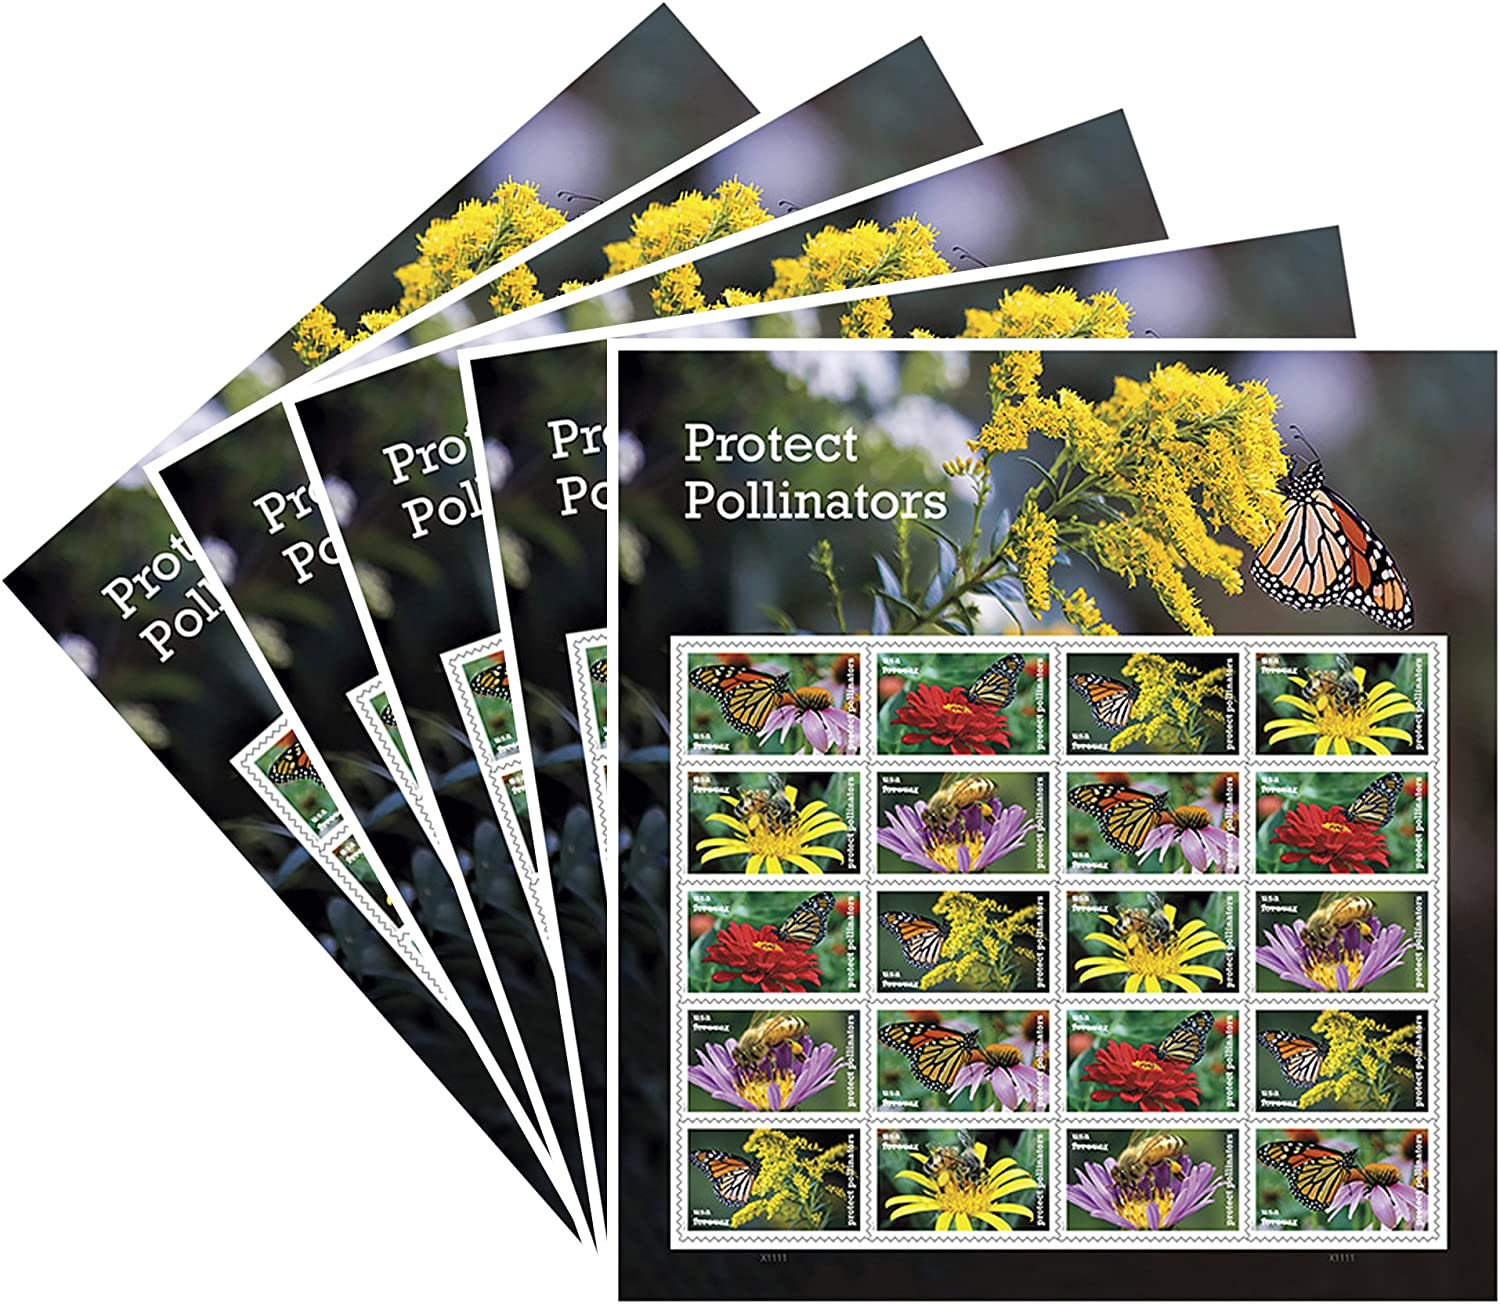 Predect Pollinators 5 Sheets of 20 Forever USPS First Class one Ounce Postage Stamps Environment Wedding Party